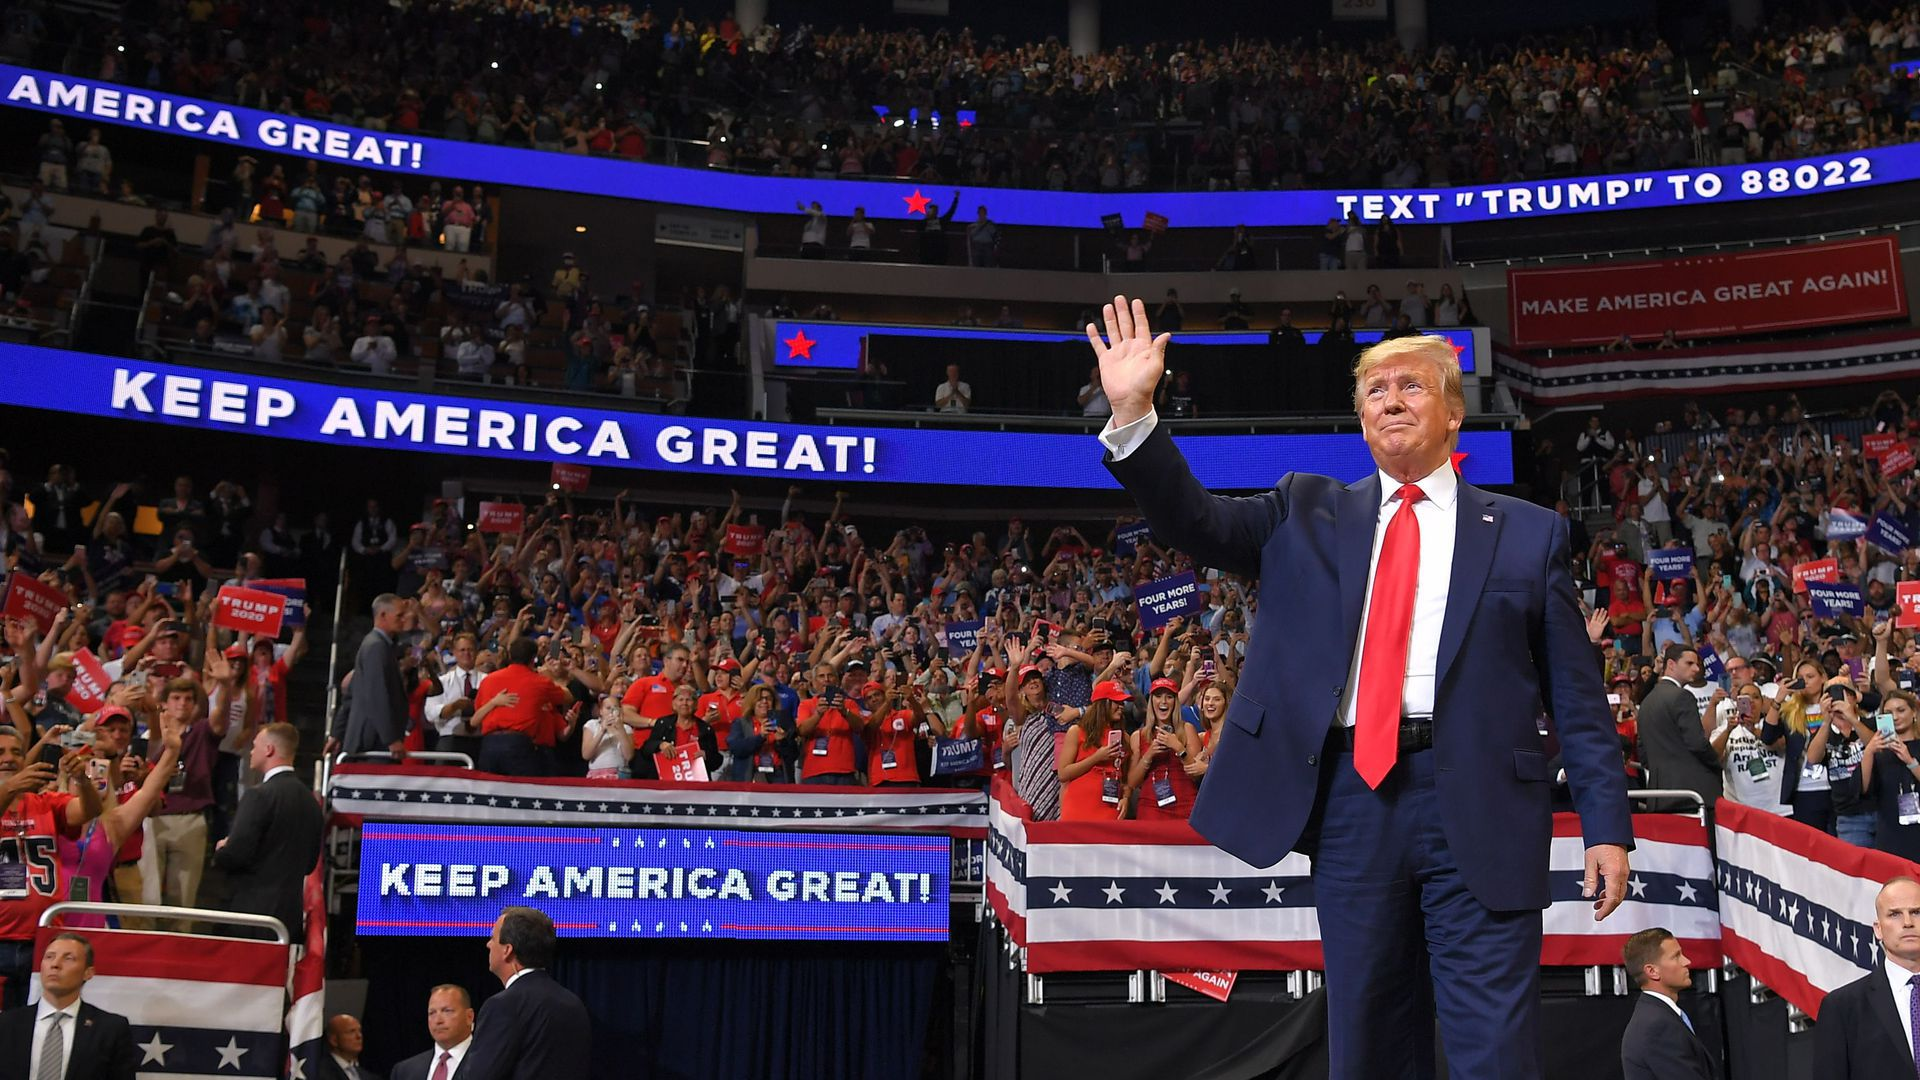 In photos: Trump launches his 2020 reelection campaign in Florida